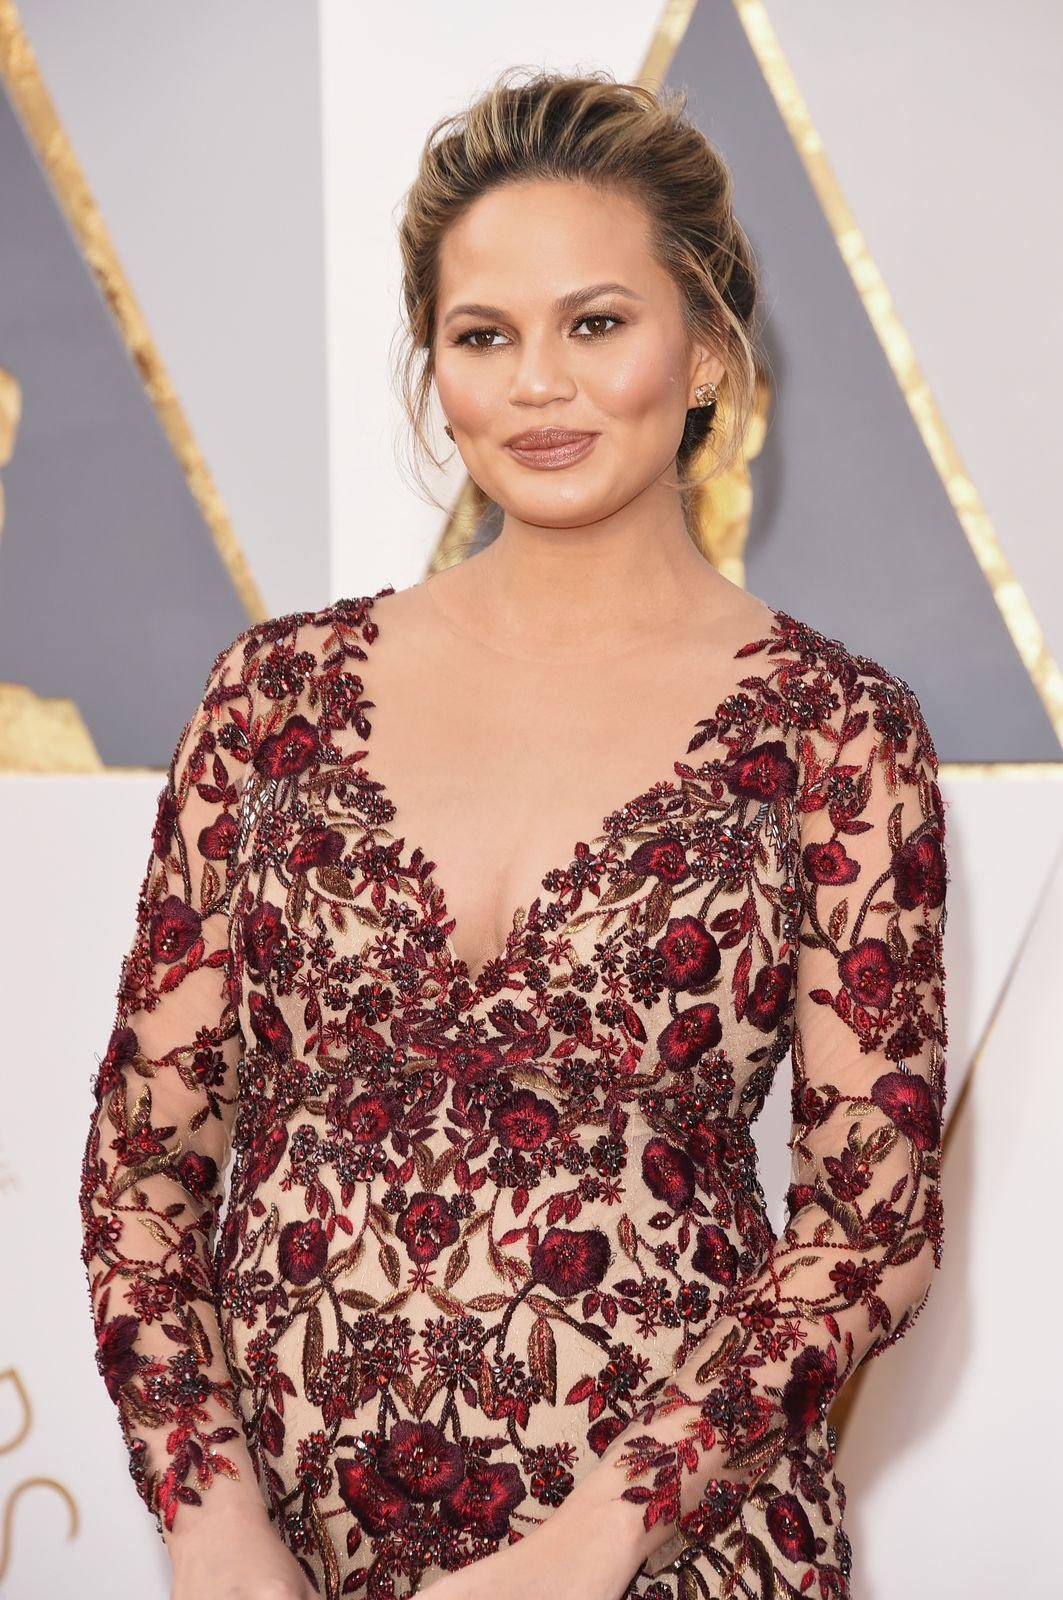 Chrissy Teigen at the 88th Annual Academy Awards on February 28, 2016 in Hollywood, California | Photo: Getty Images